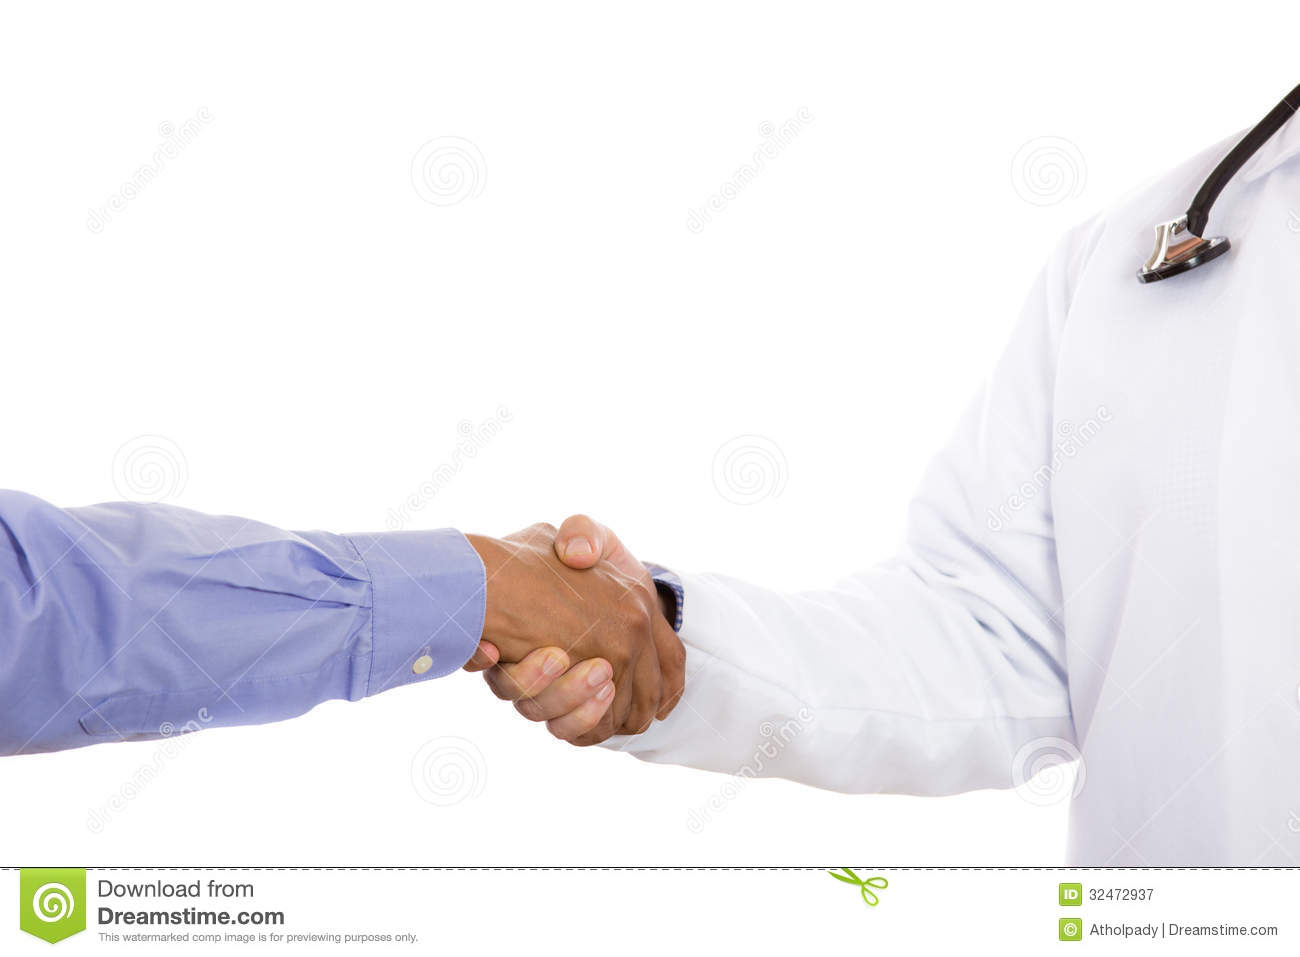 Handshake Between Doctor And Patient Stock Image - Image of blood